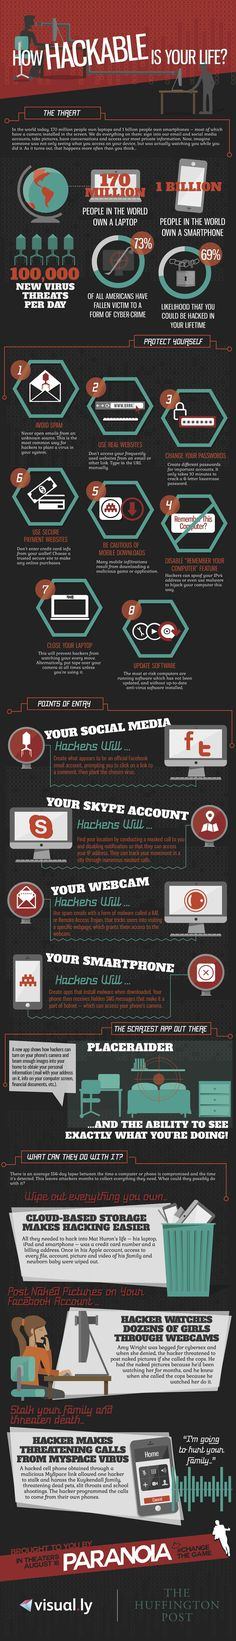 How Hackable is Your Life? The more you know... #infographic